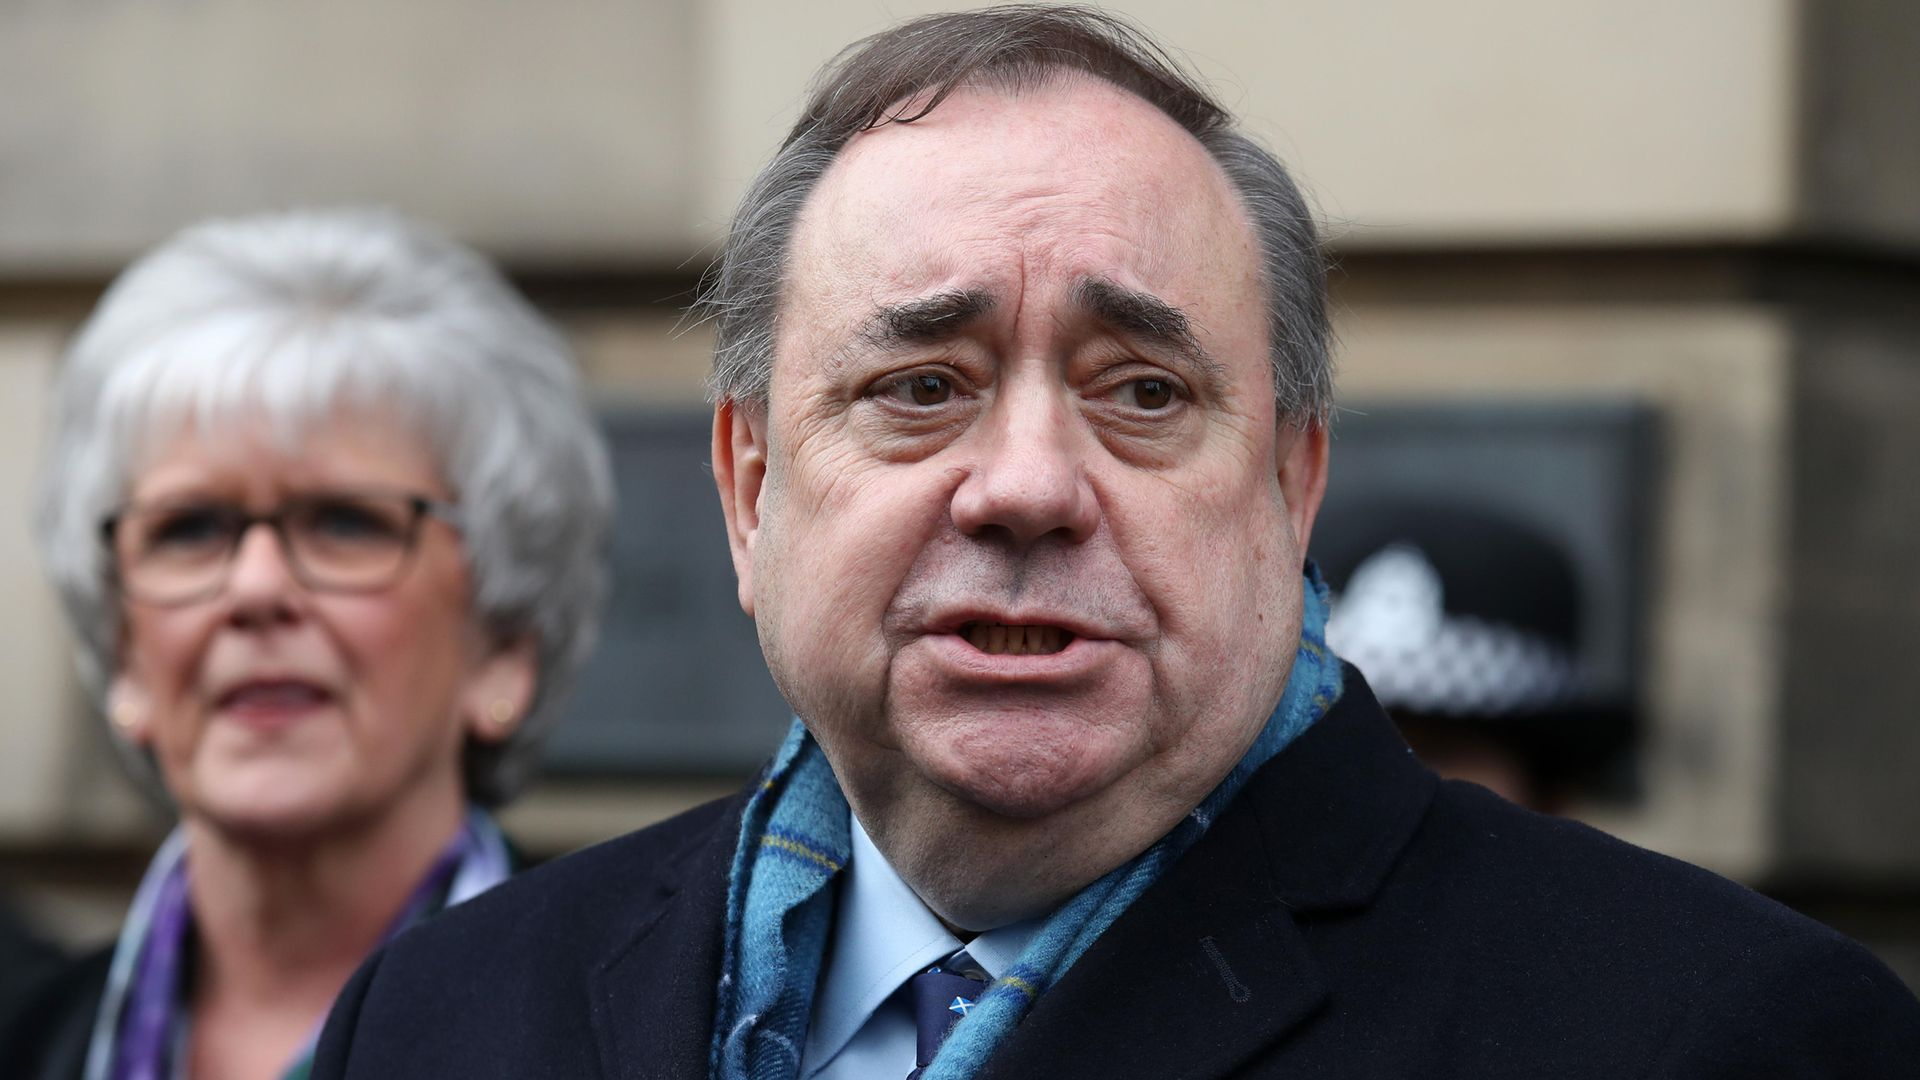 Scotland's former first minister Alex Salmond who has announced he is setting up a new political party to run in the Scottish Parliament elections in May - Credit: PA